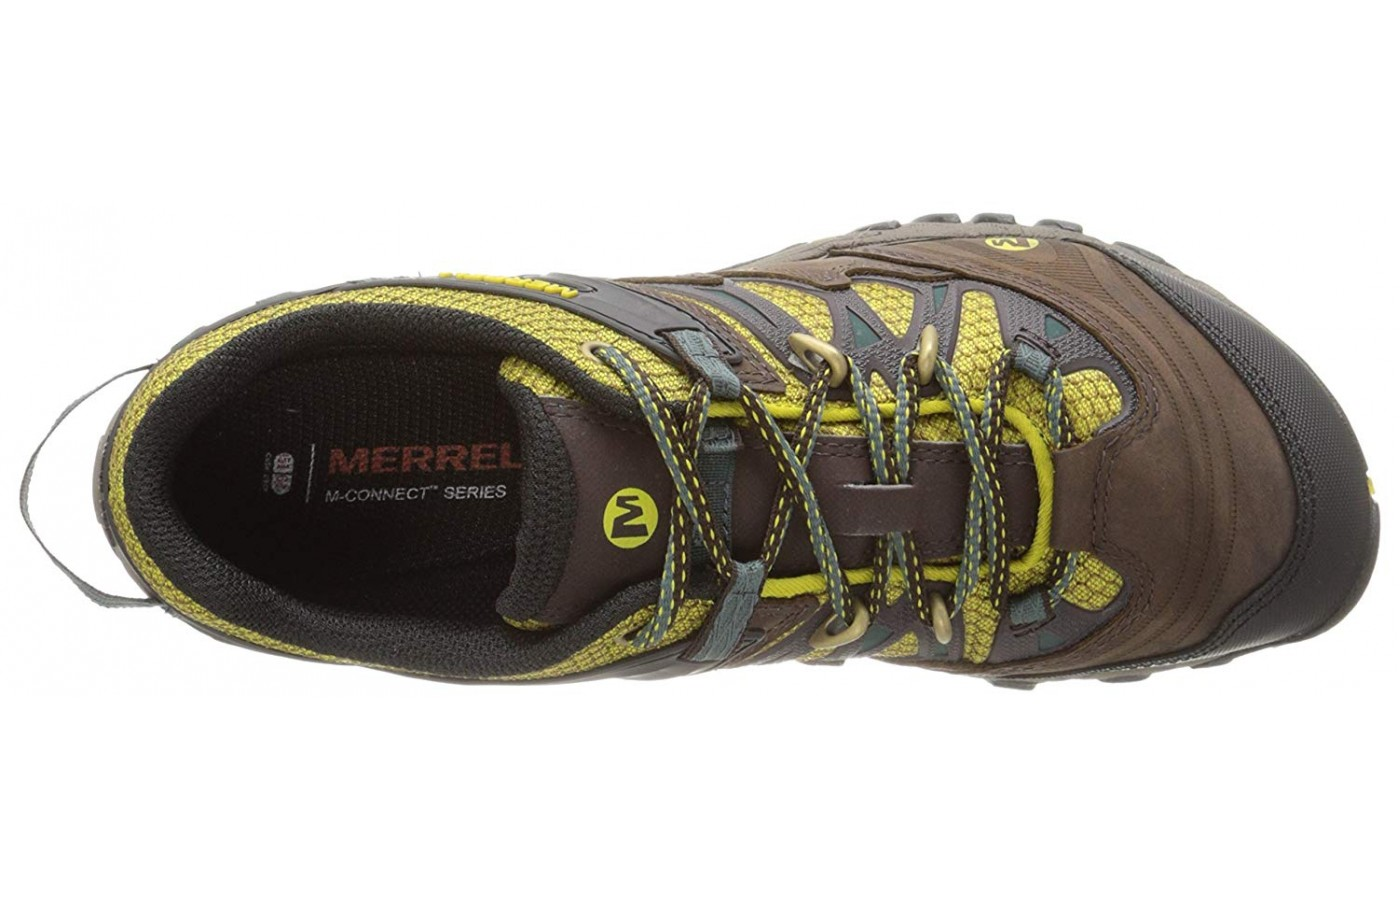 Merrell is known for producing high quality footwear.